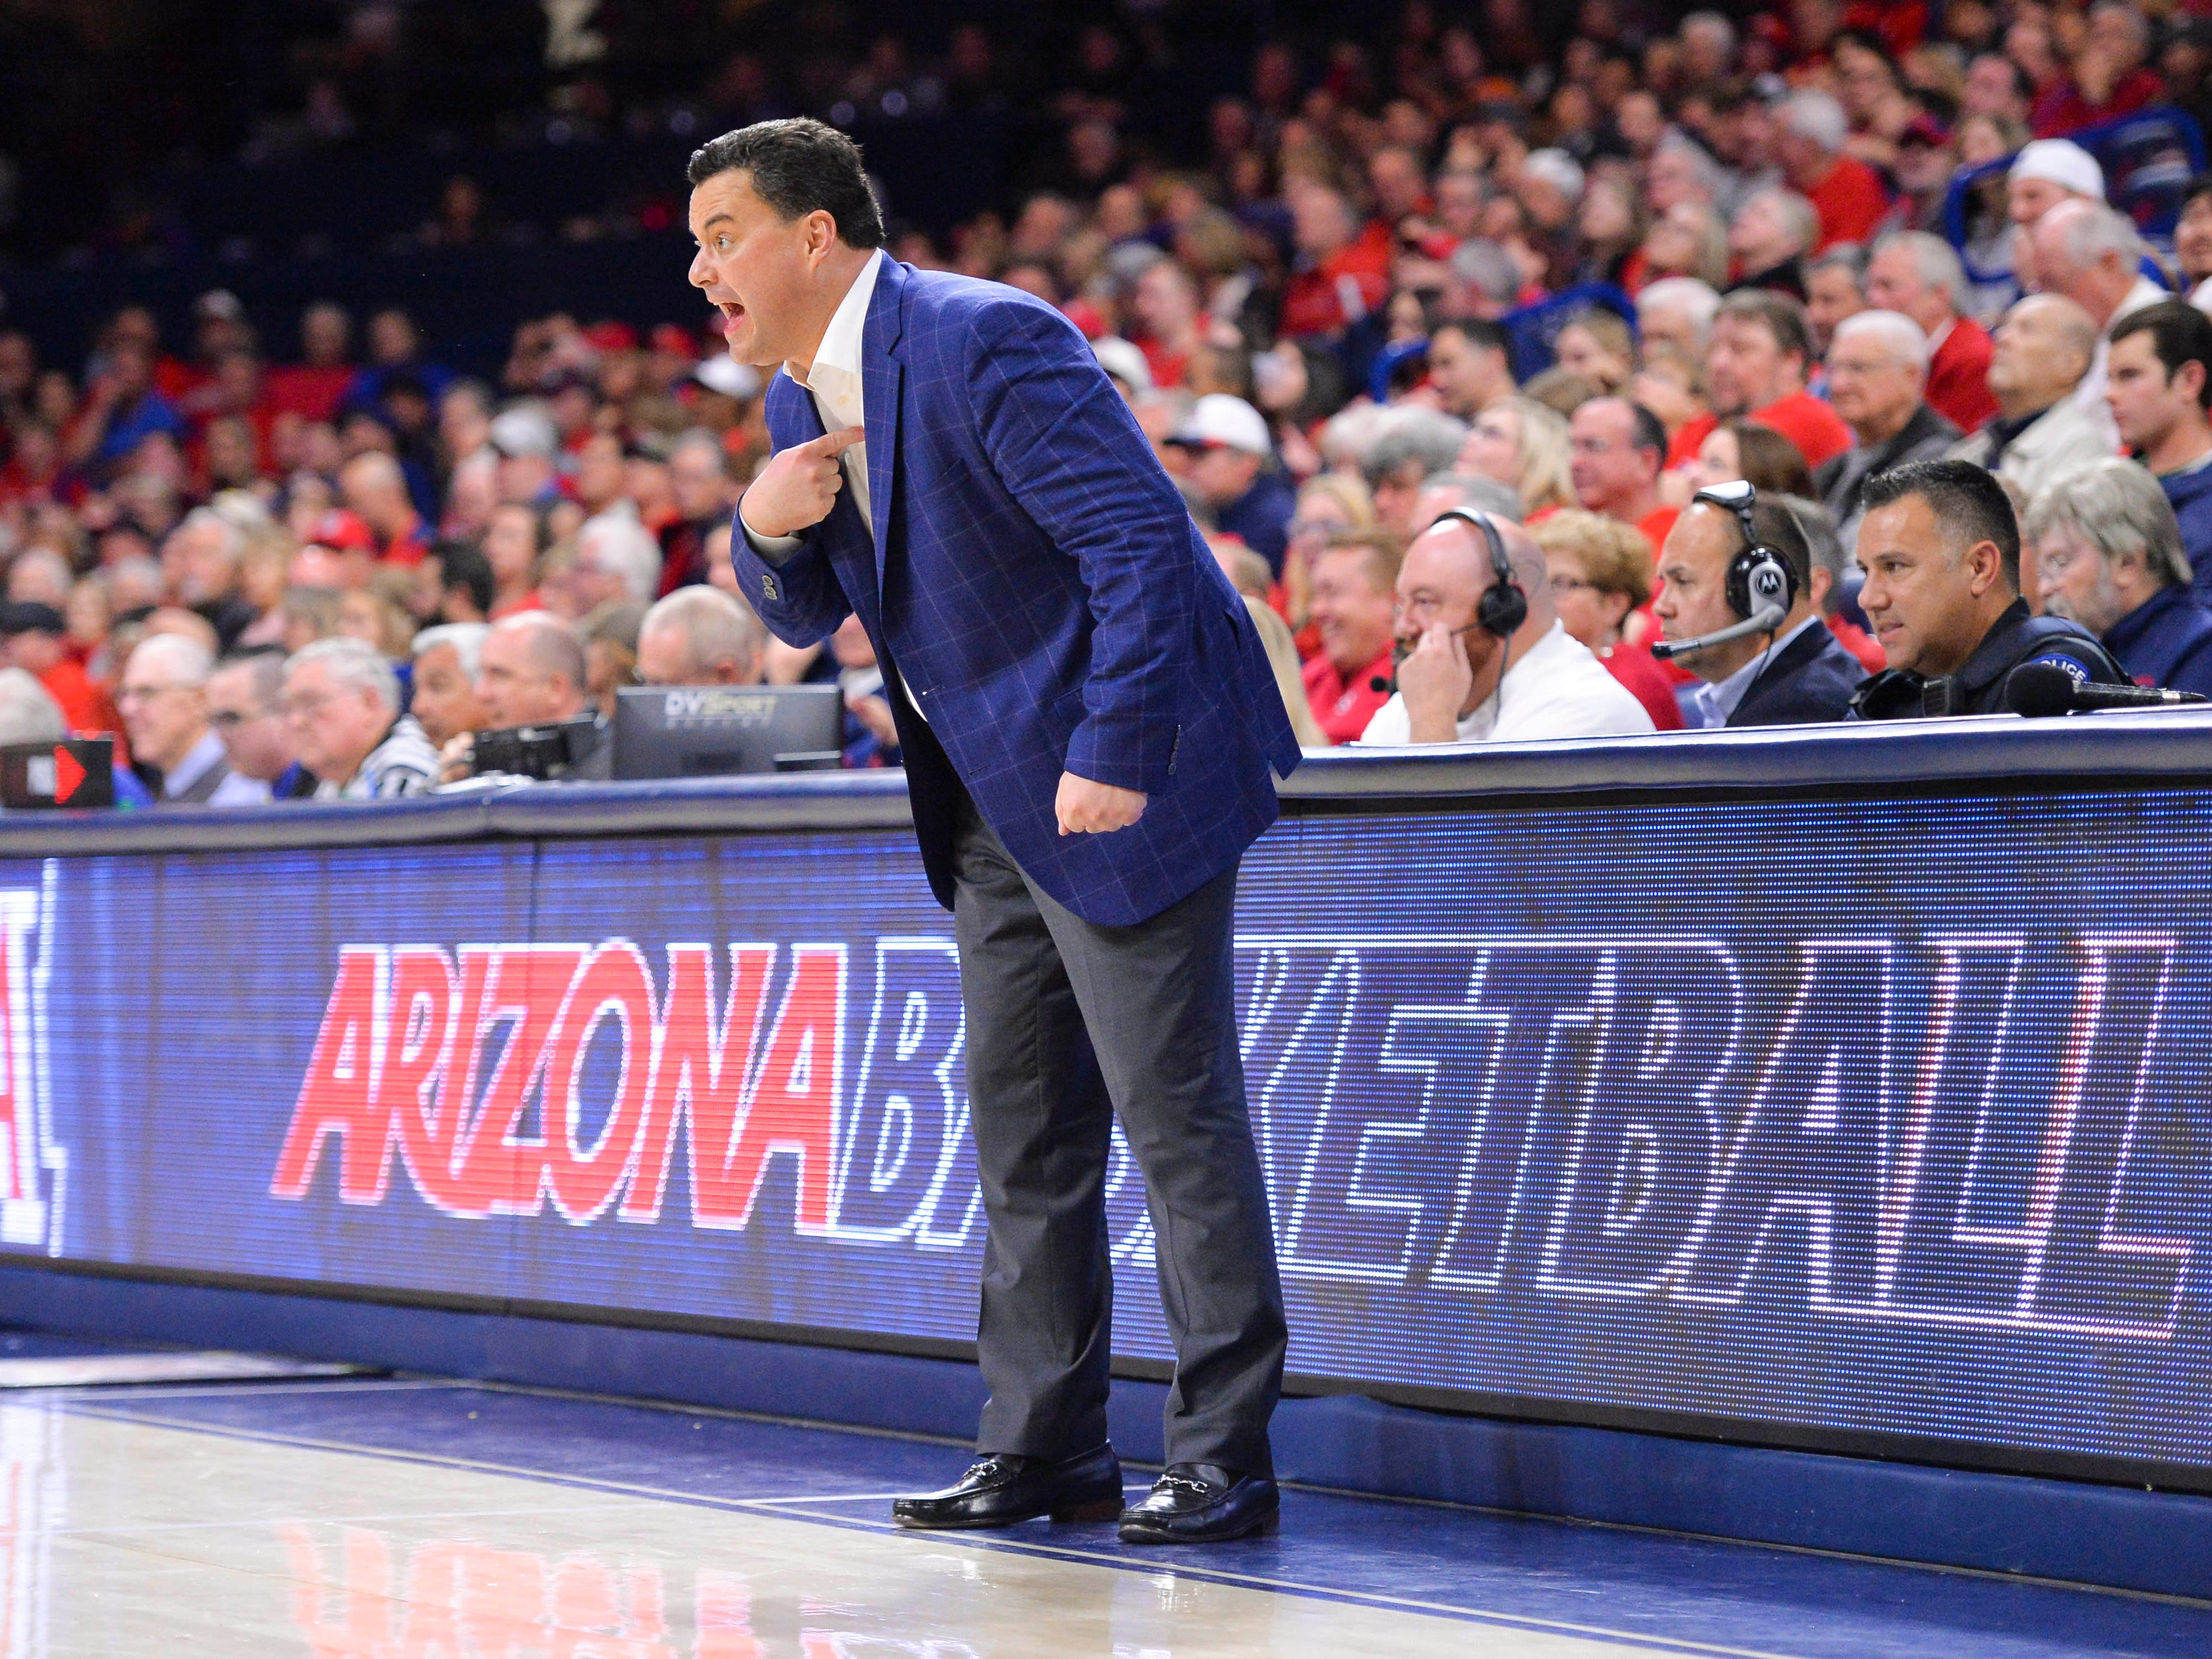 Feb 24, 2019: Arizona Wildcats head coach Sean Miller reacts during the second half against the Stanford Cardinal at McKale Center.